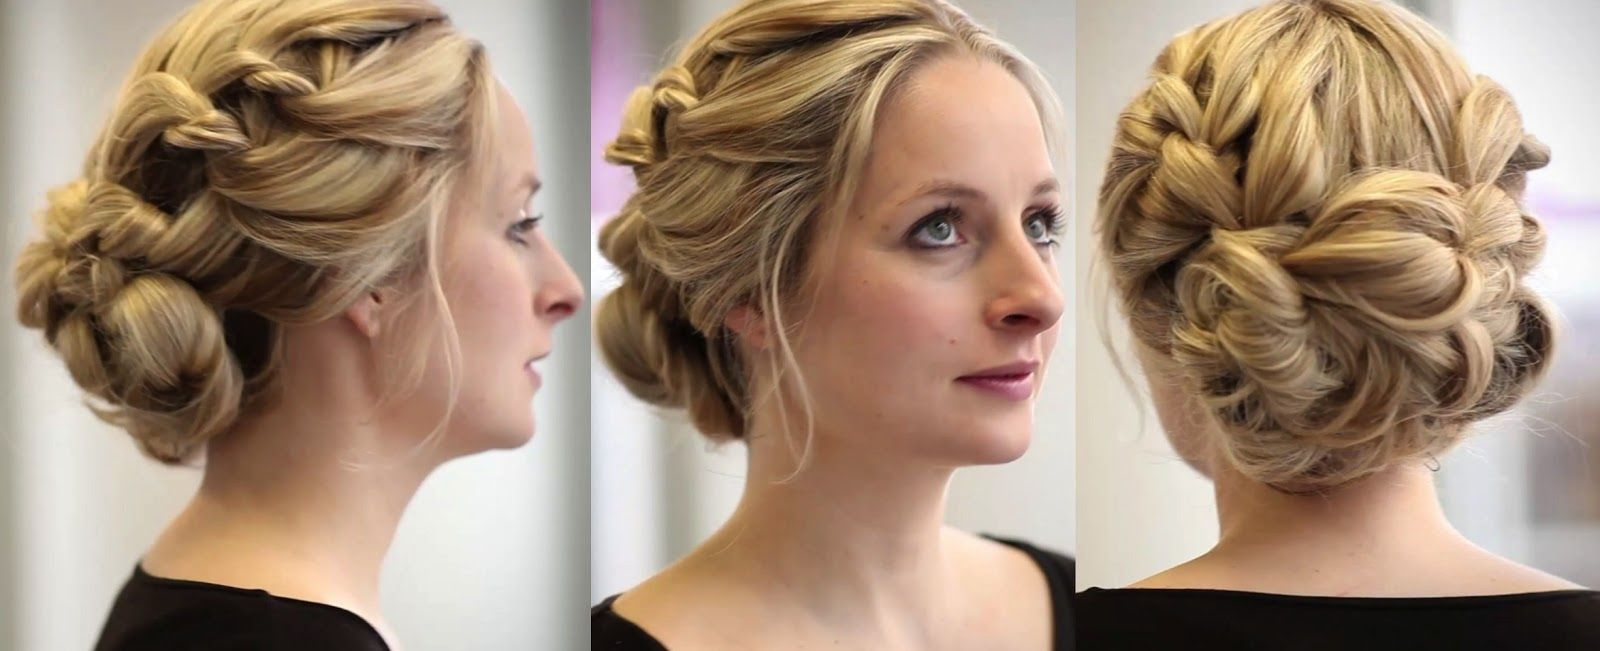 hairstyles for bridesmaids with short hair : simple hairstyle ideas